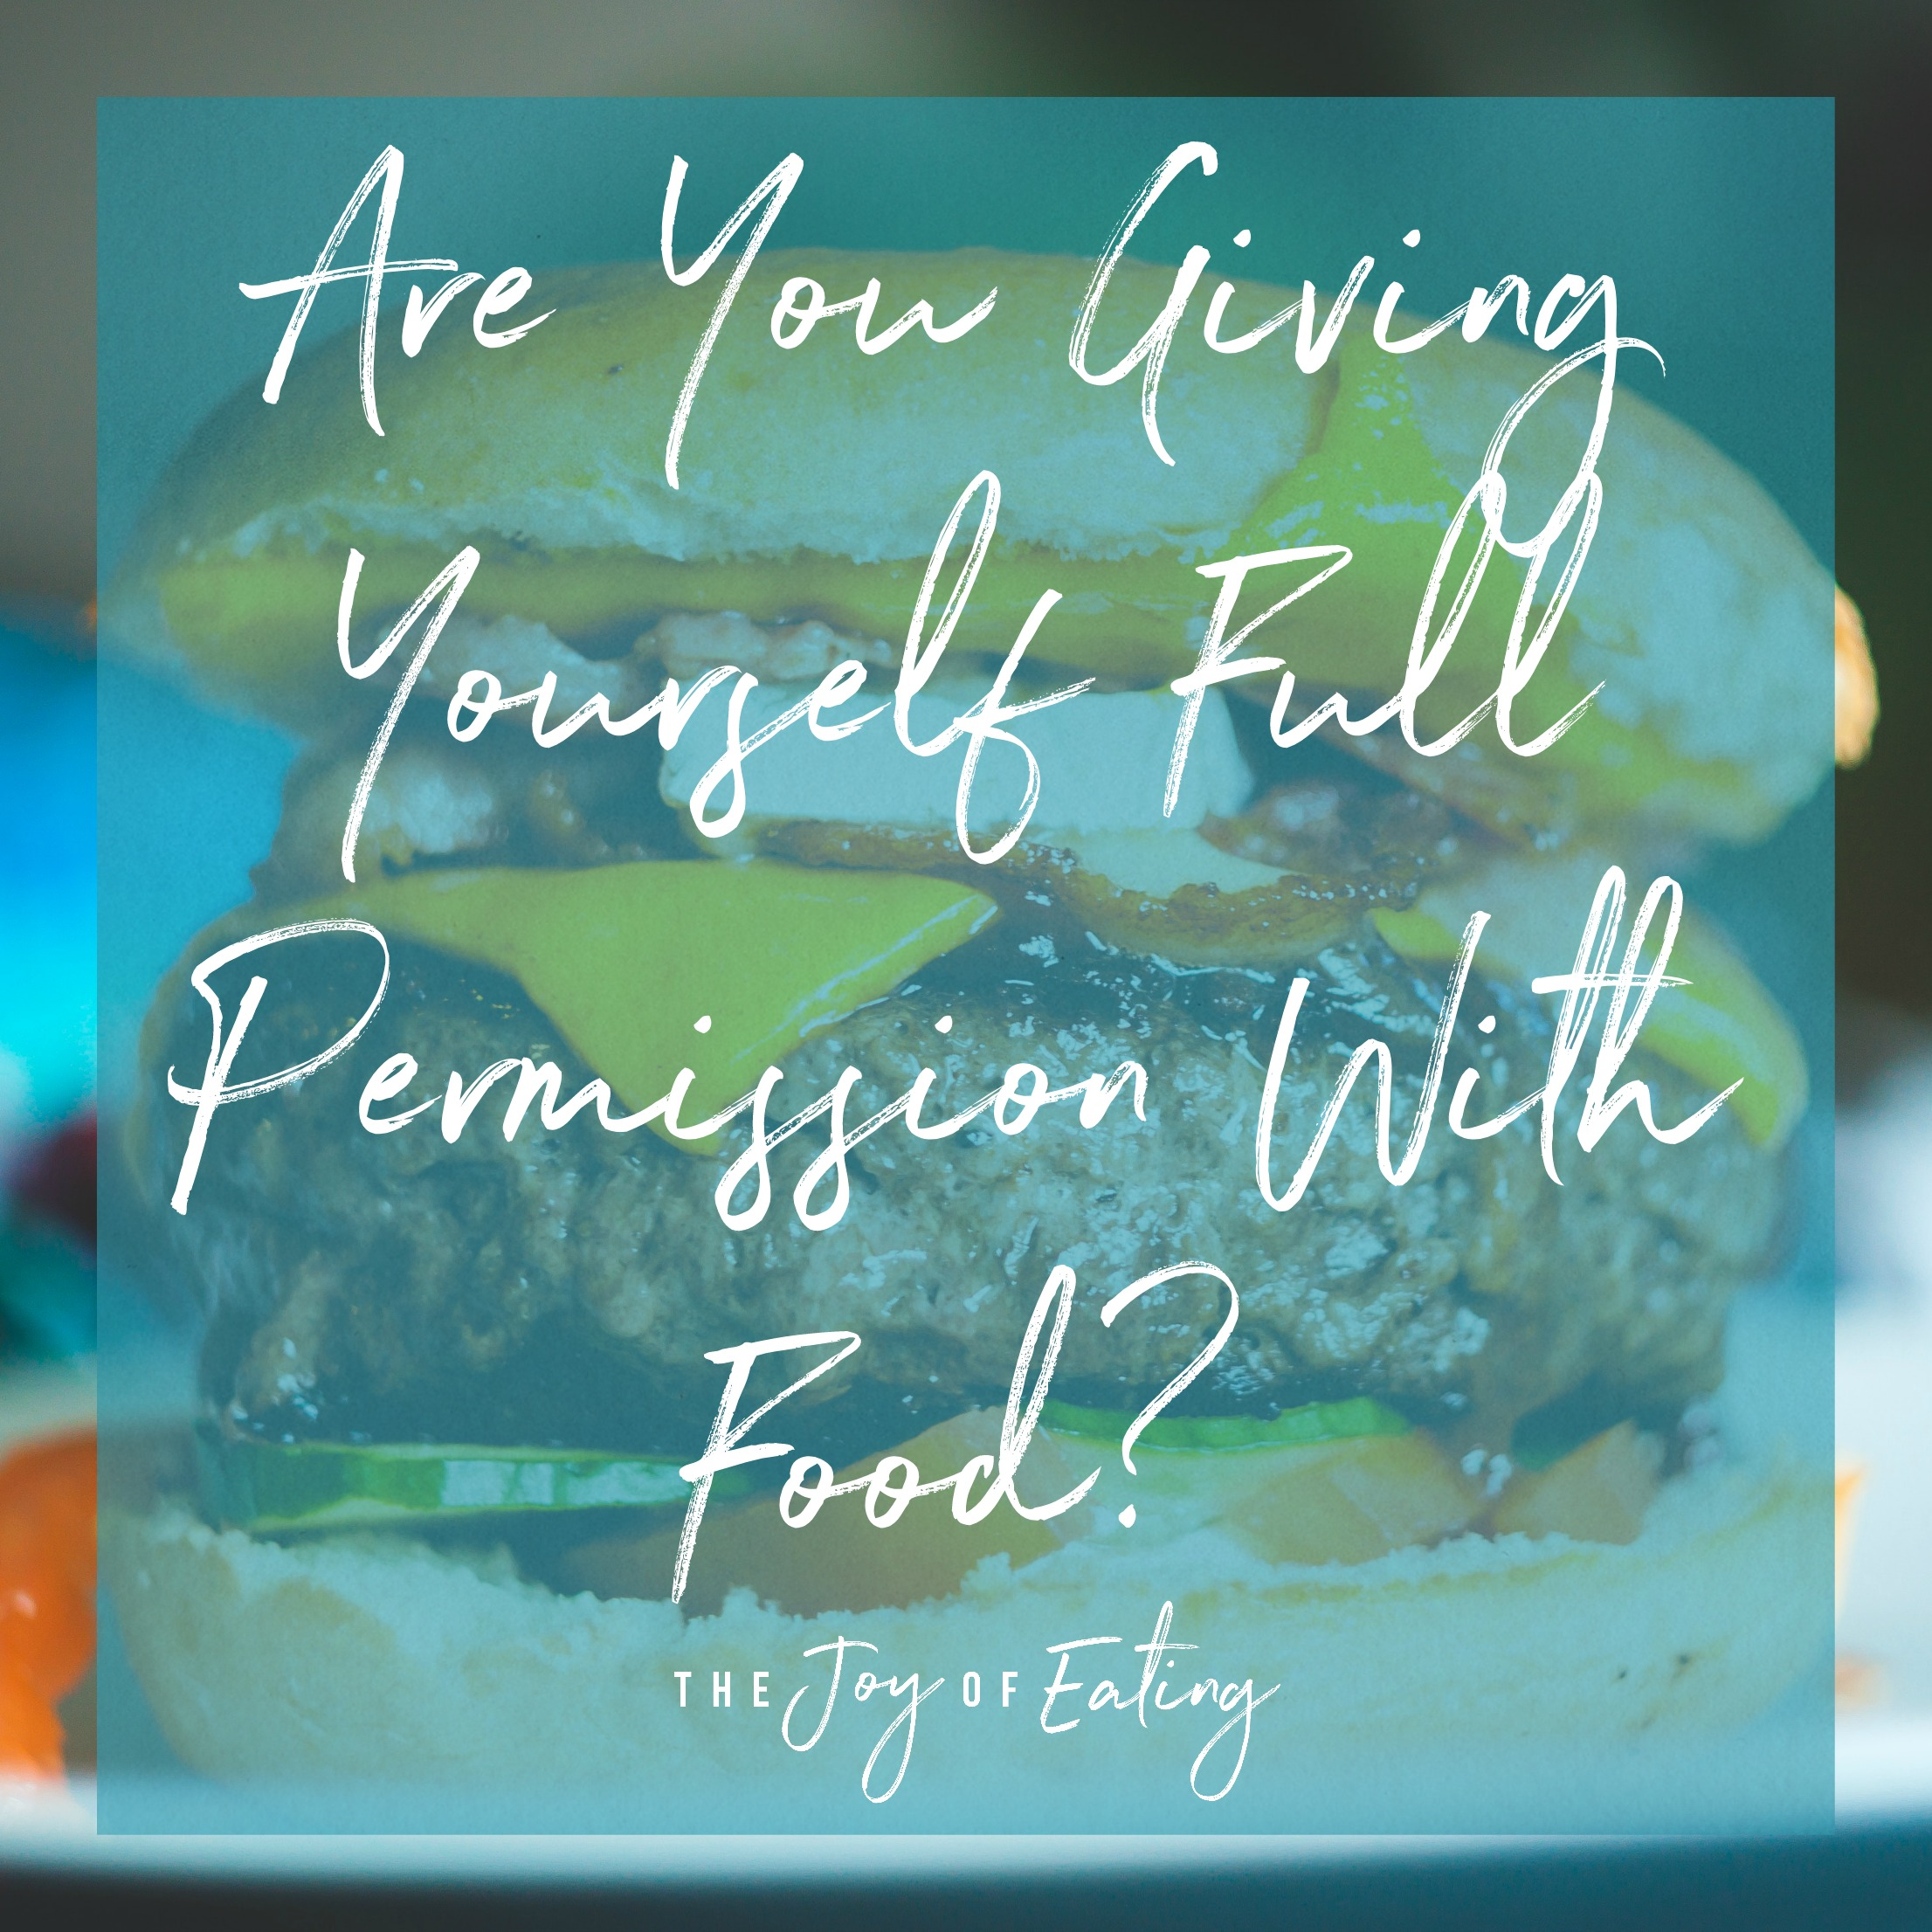 Are you giving yourself full permission with food, or partial permission? #intuitiveeating #wellness #nutrition